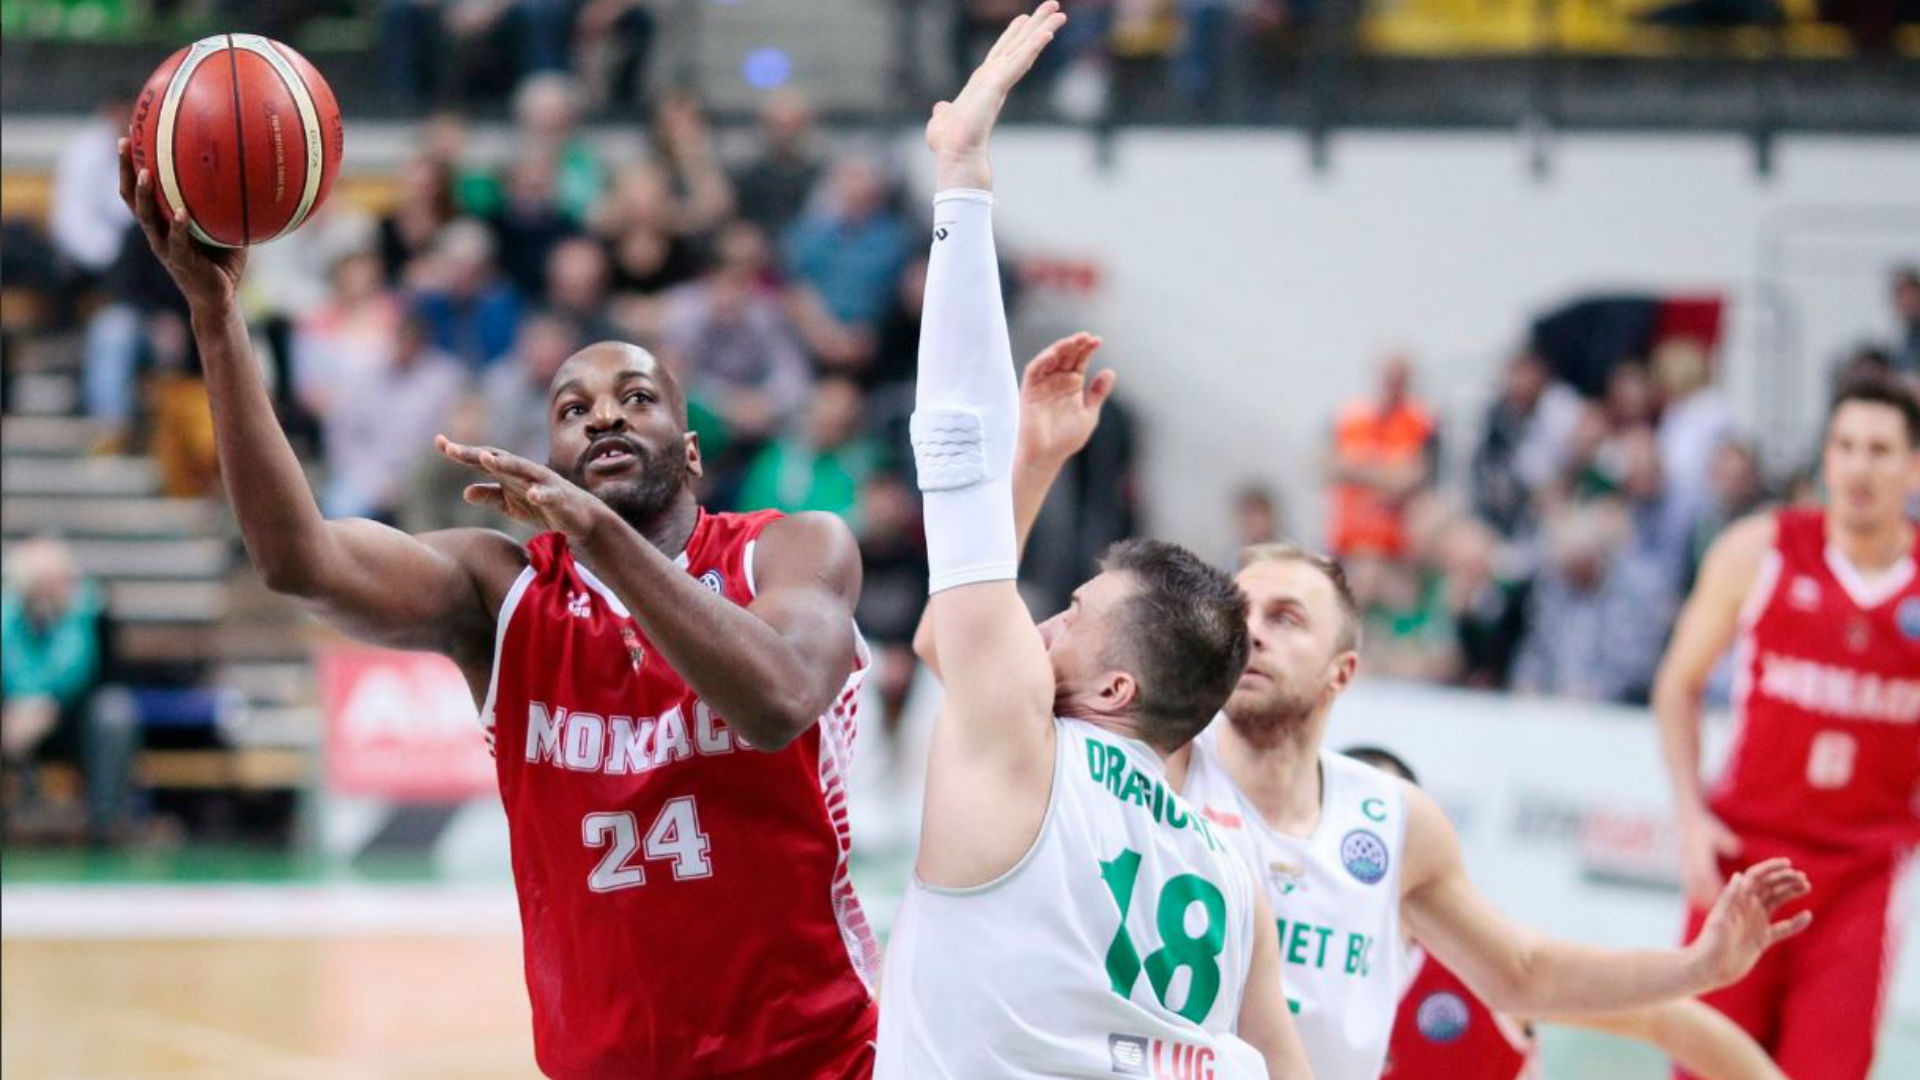 The Basketball Champions League returned on Tuesday as Monaco and PAOK kicked off the play-offs with victories.